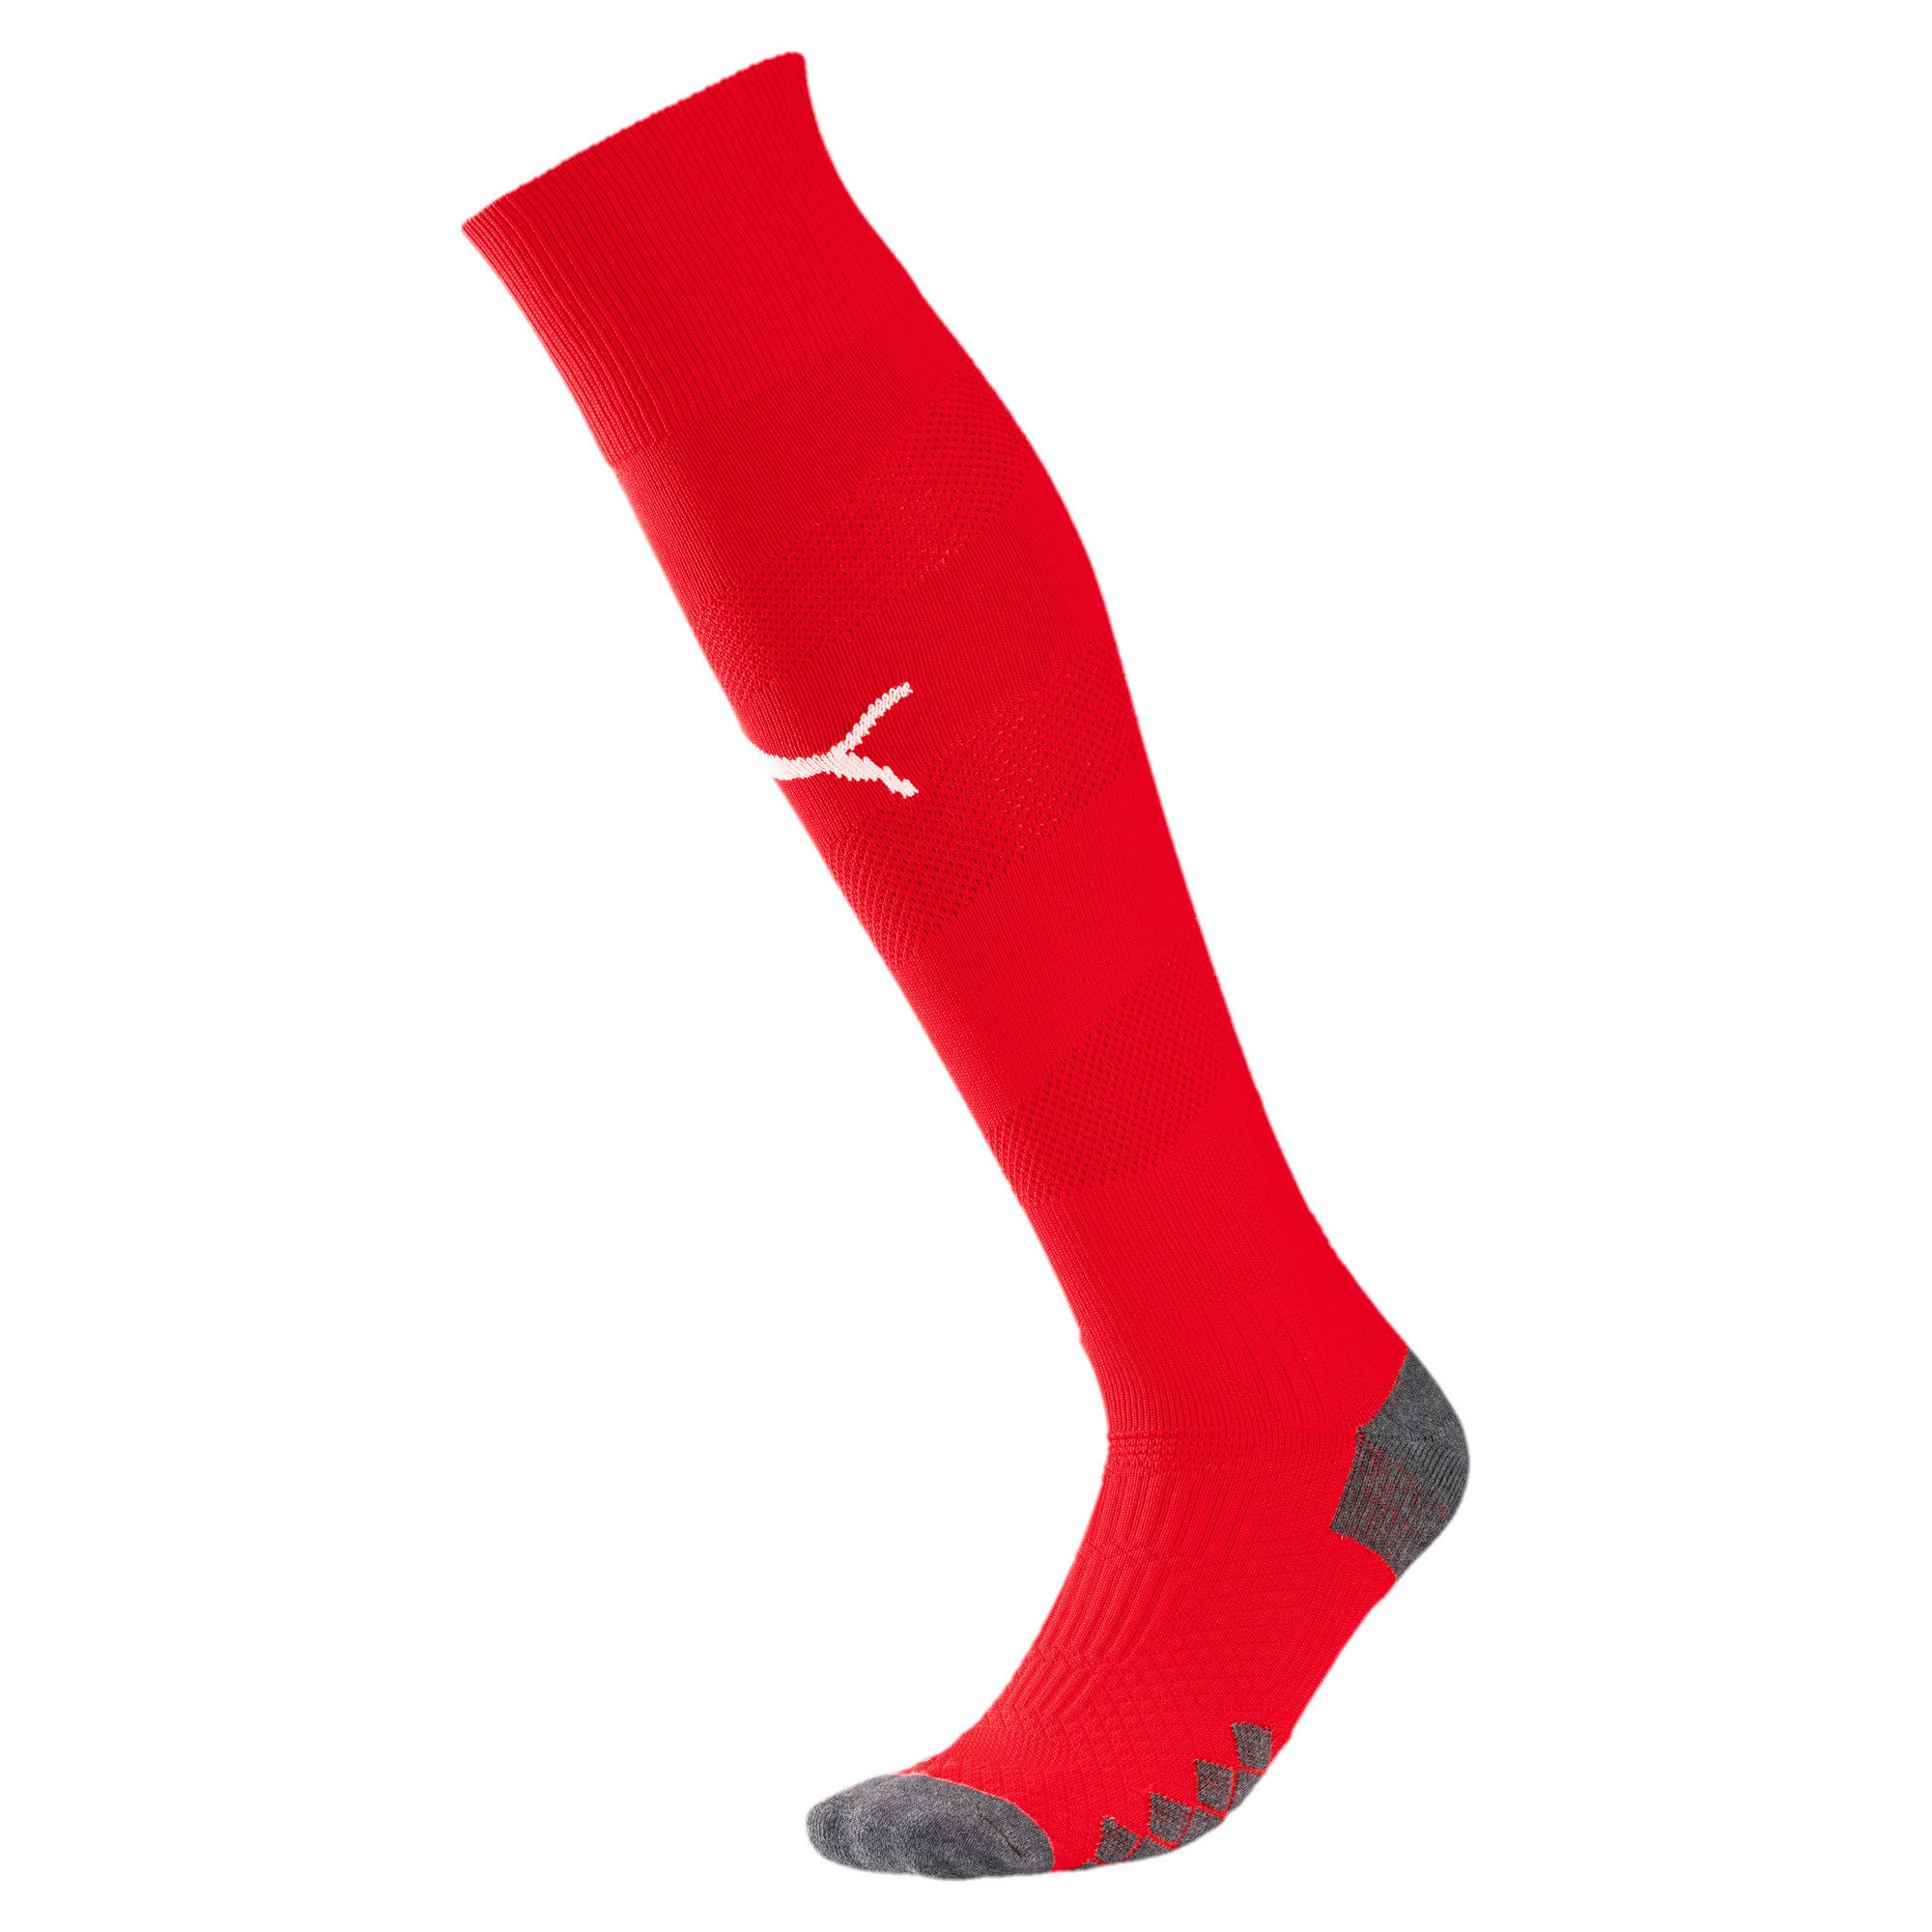 Thumbnail 1 of Olympique de Marseille Spiral Socks, Puma Red-Puma White, medium